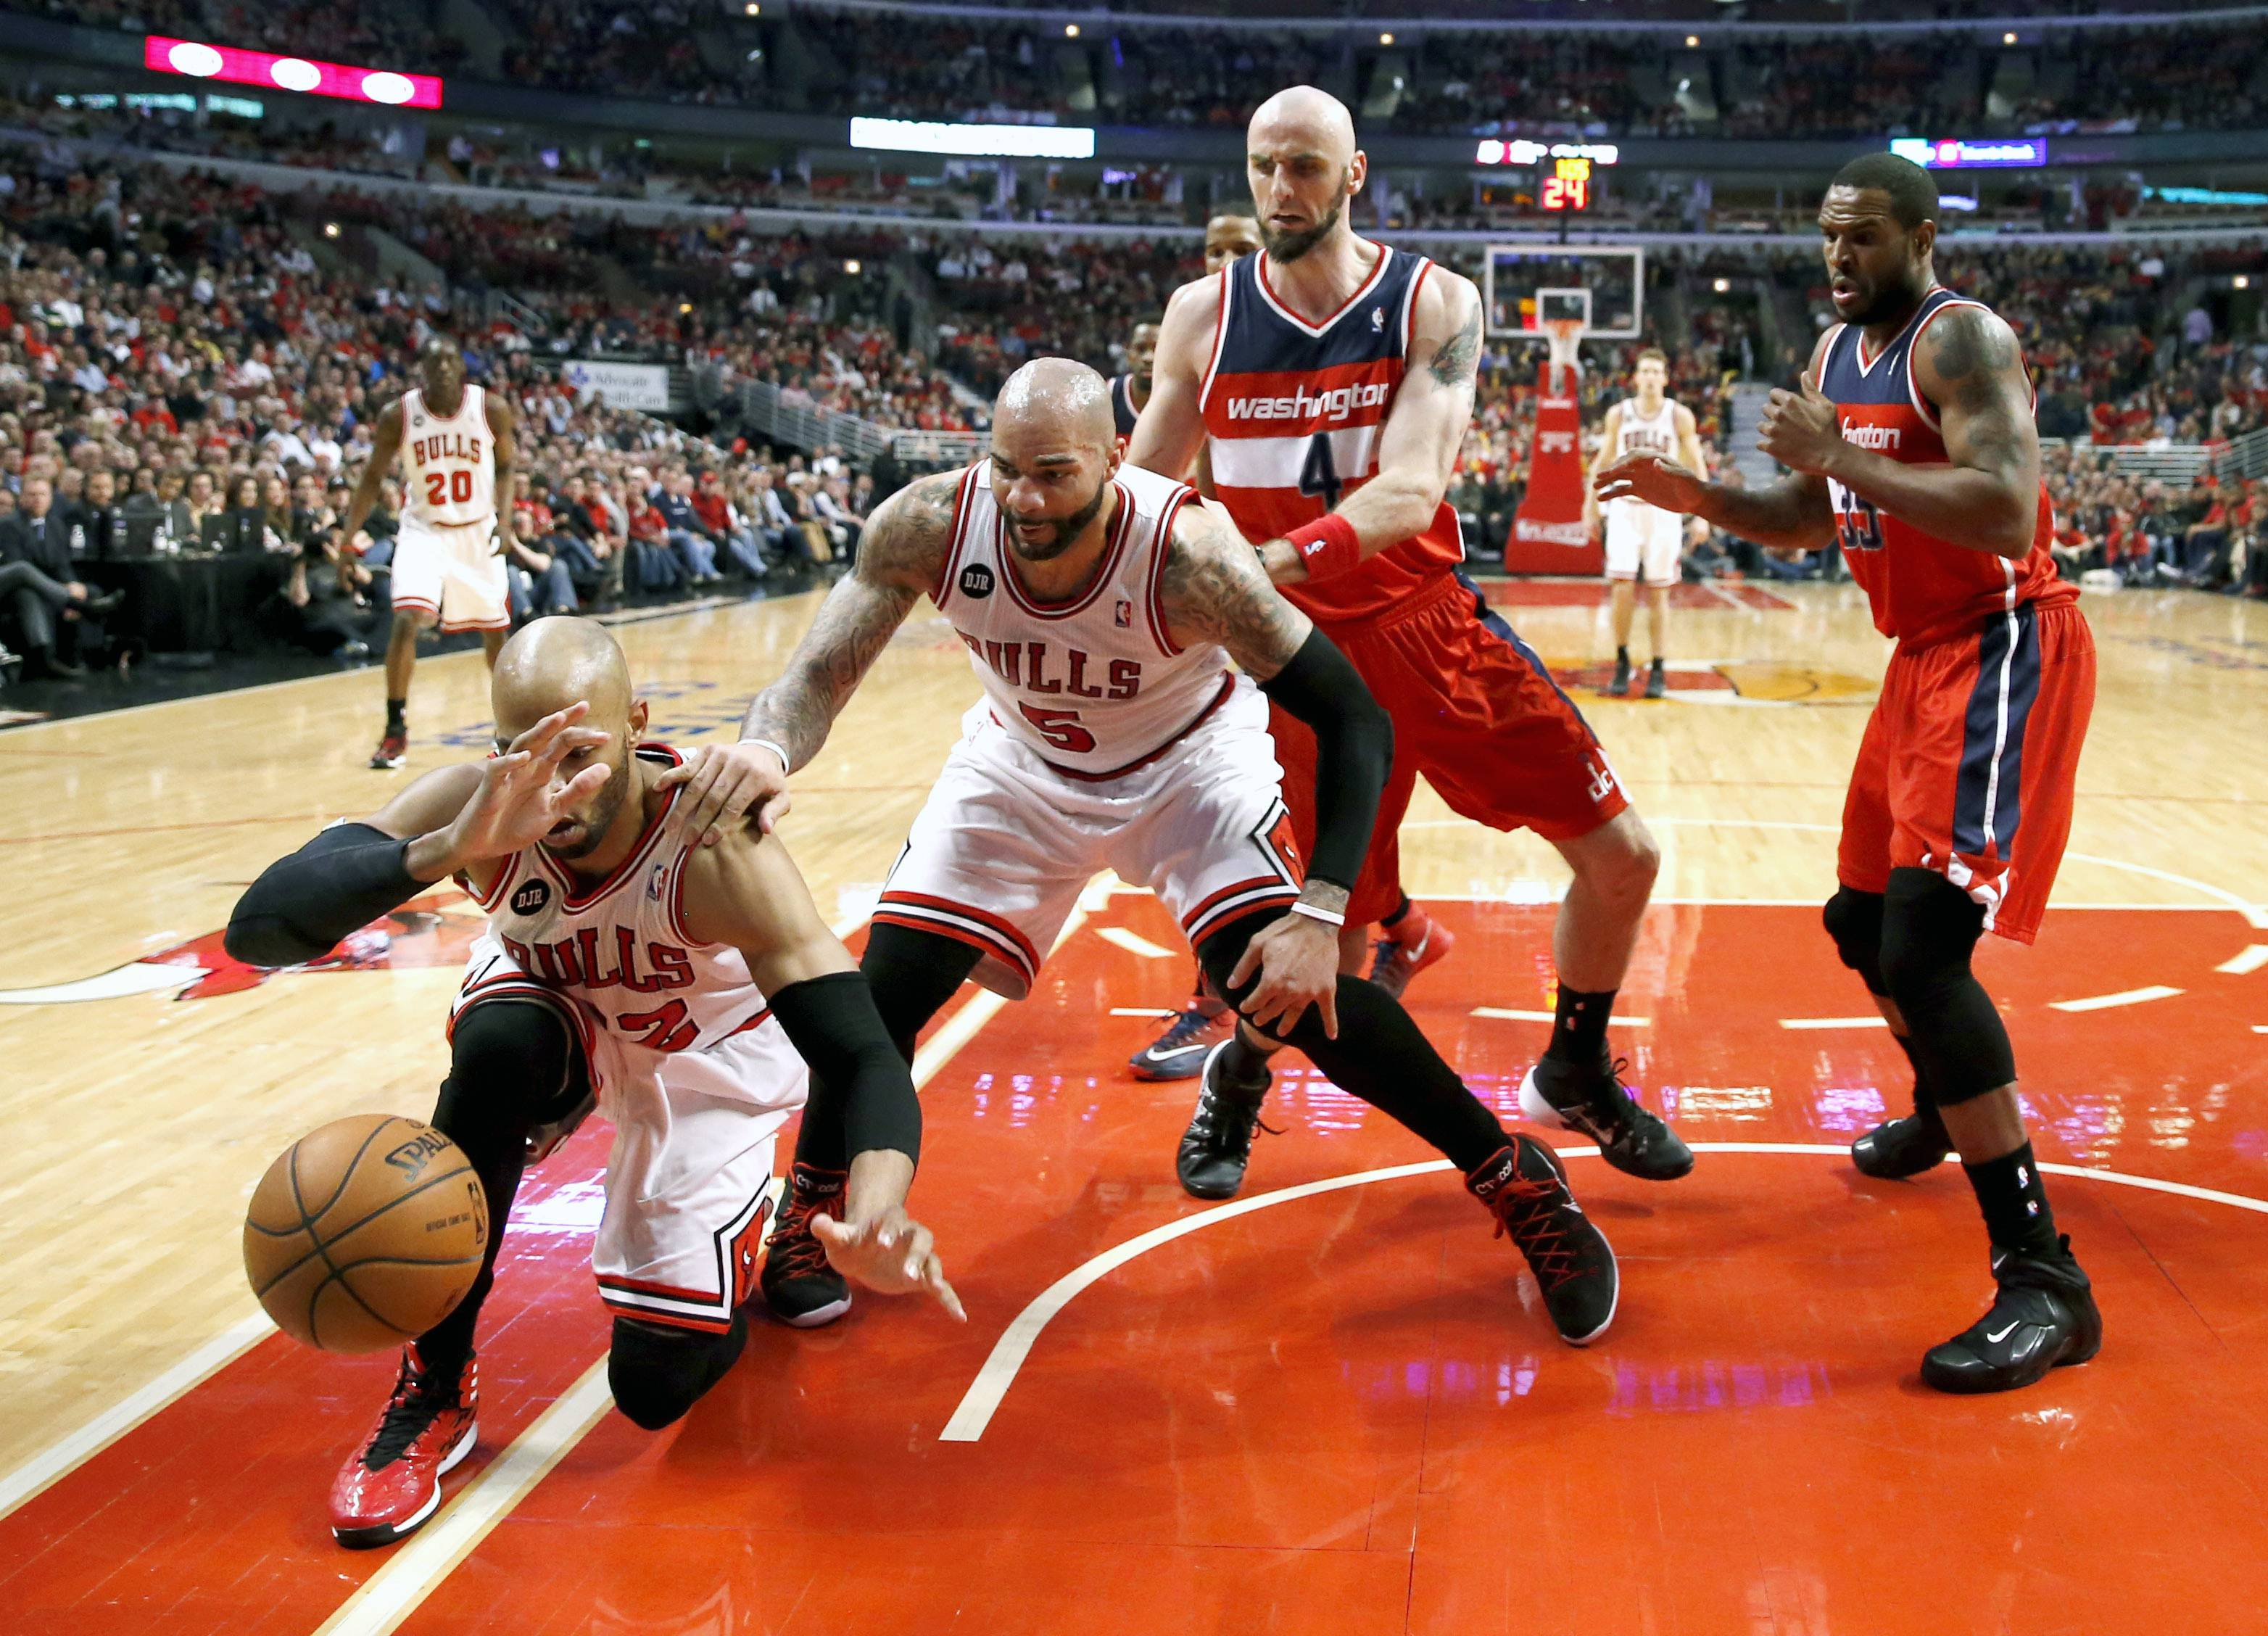 Chicago Bulls forward Taj Gibson (22) keeps the ball from going out of bounds as Carlos Boozer (5), Washington Wizards center Marcin Gortat (4) and Trevor Booker (35) stand near during the first half of Game 5 in an opening-round NBA basketball playoff series Tuesday in Chicago. The Bulls were eliminated from the playoffs with a 75-69 loss.